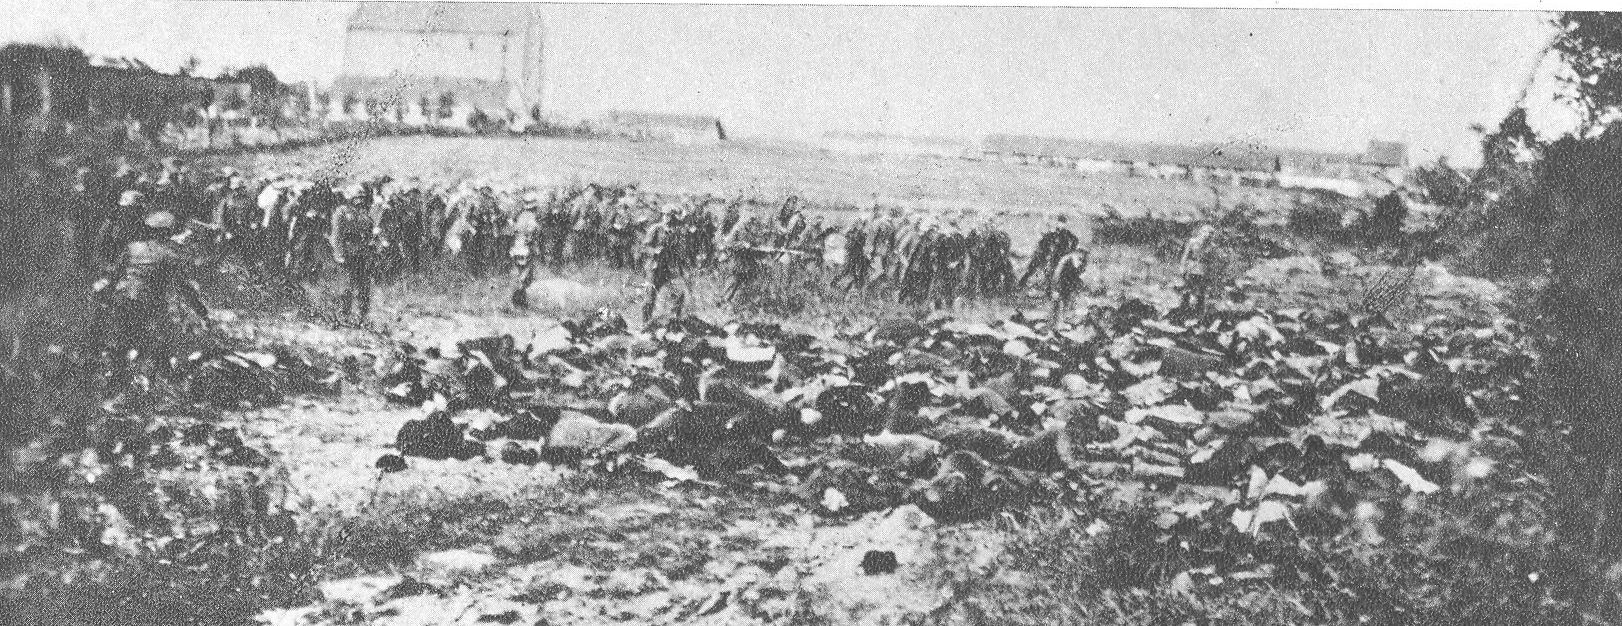 File:Mass murder of civilians in Serbia 1941.jpg ...